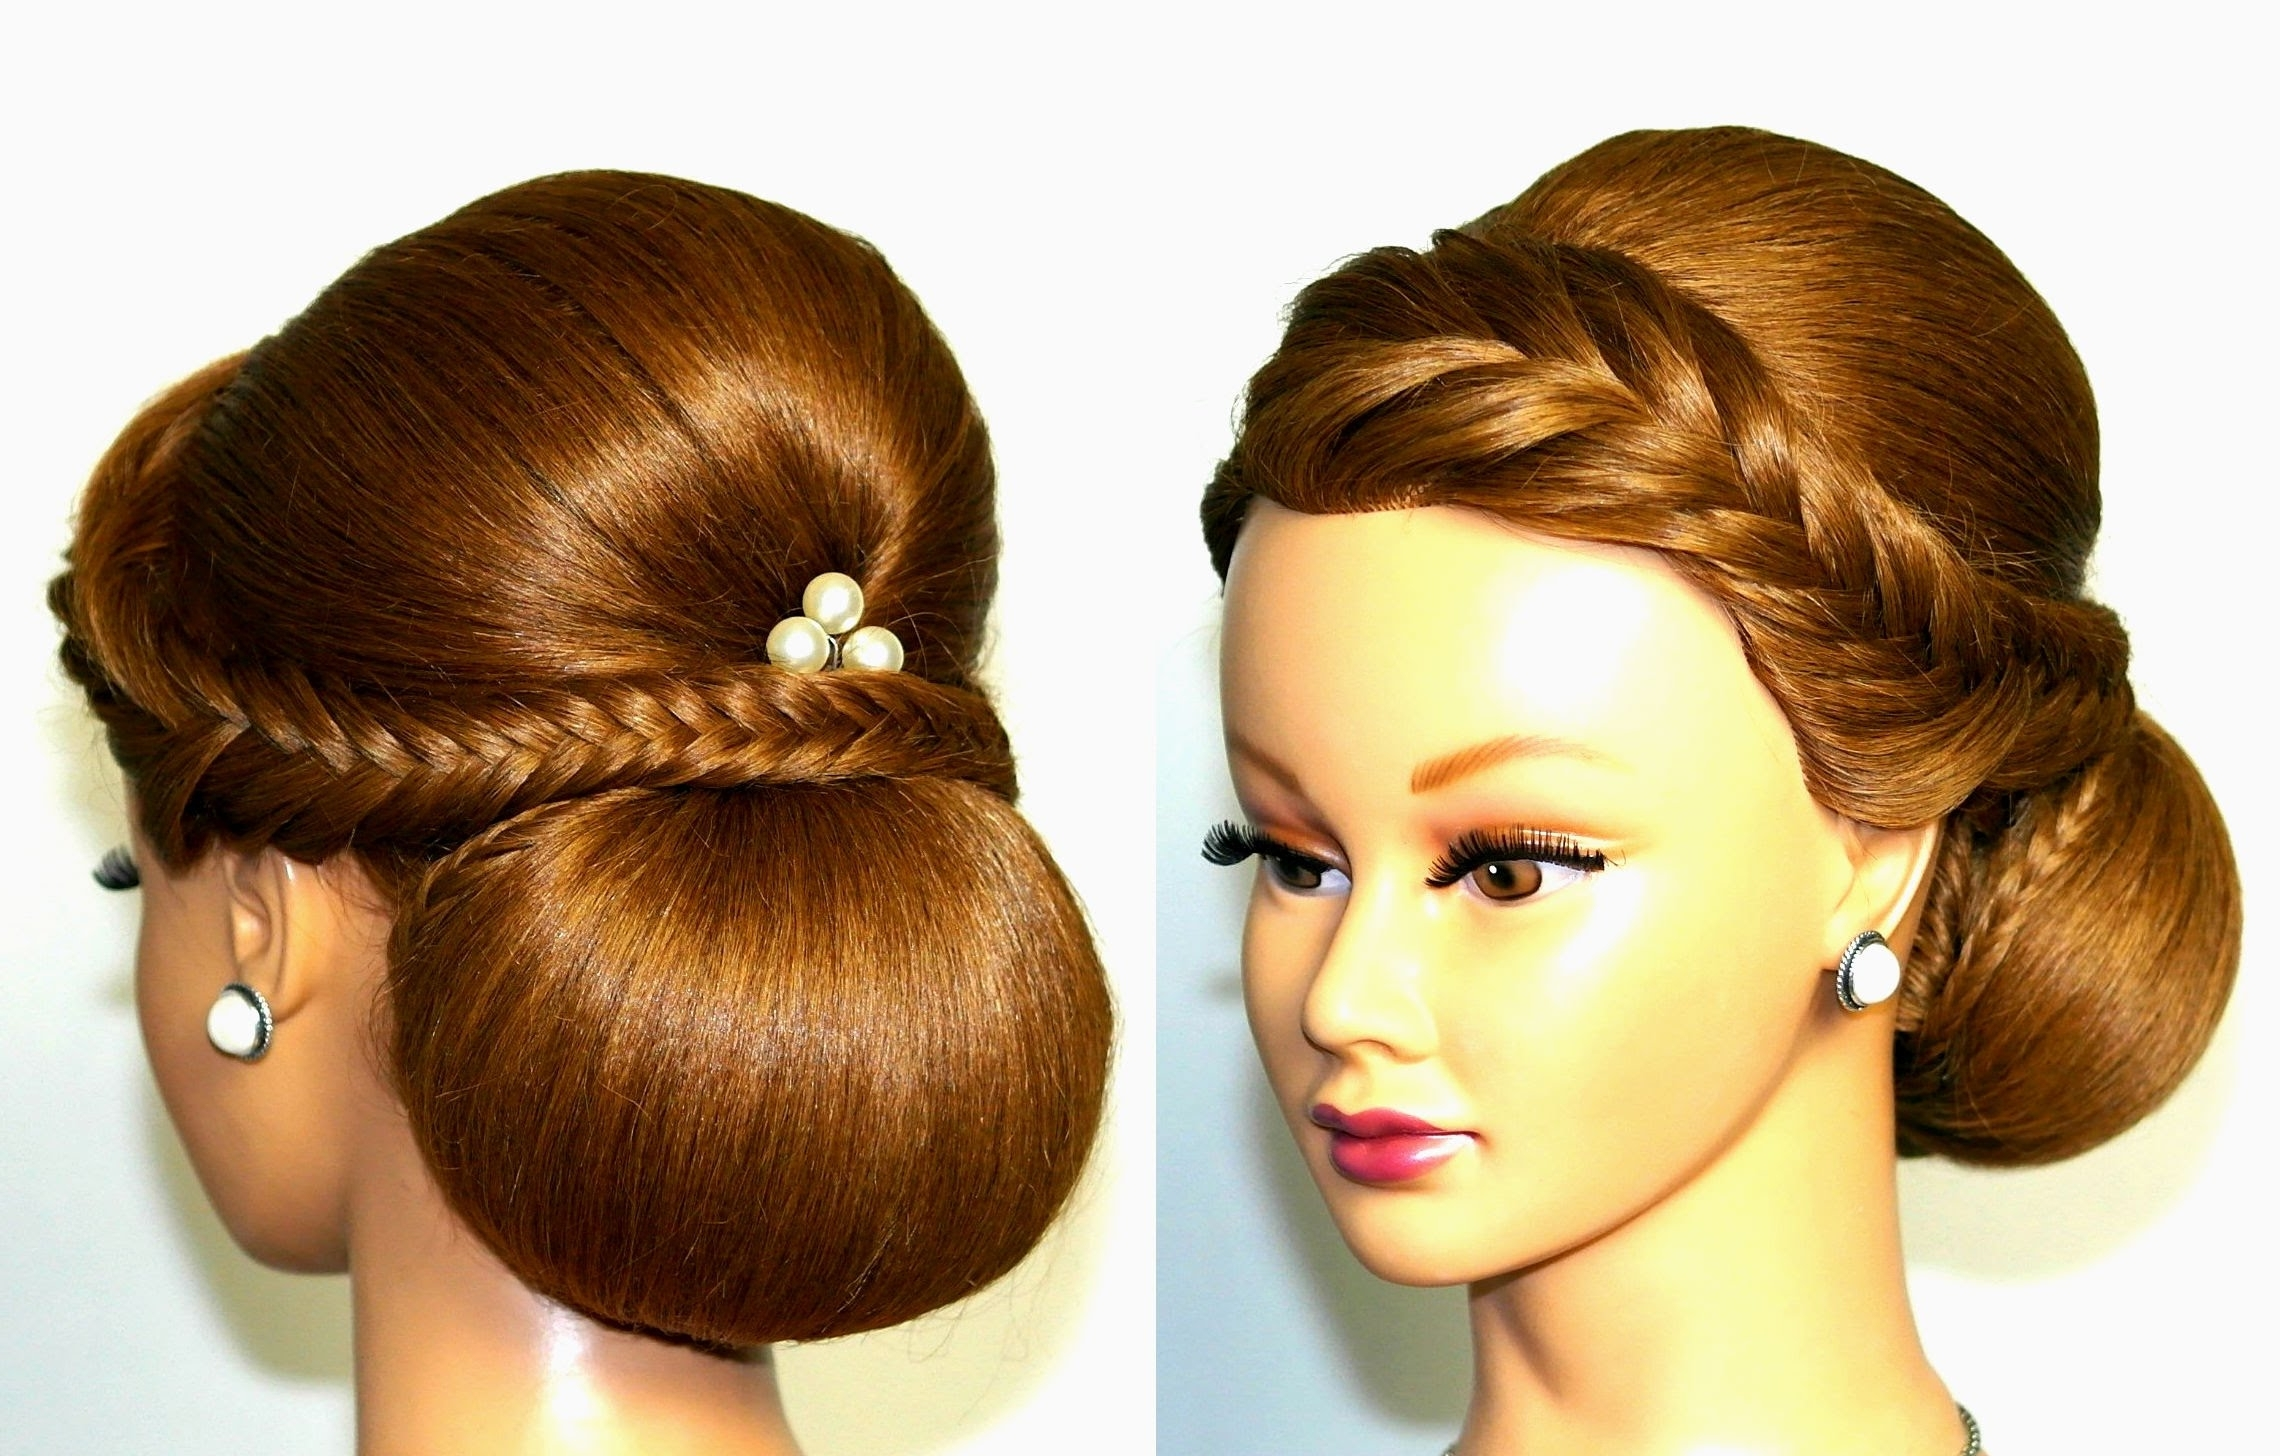 Trendy Put Up Wedding Hairstyles For Long Hair Within Wedding Hairstyle For Medium Long Hair, Elegant Updo (View 12 of 15)